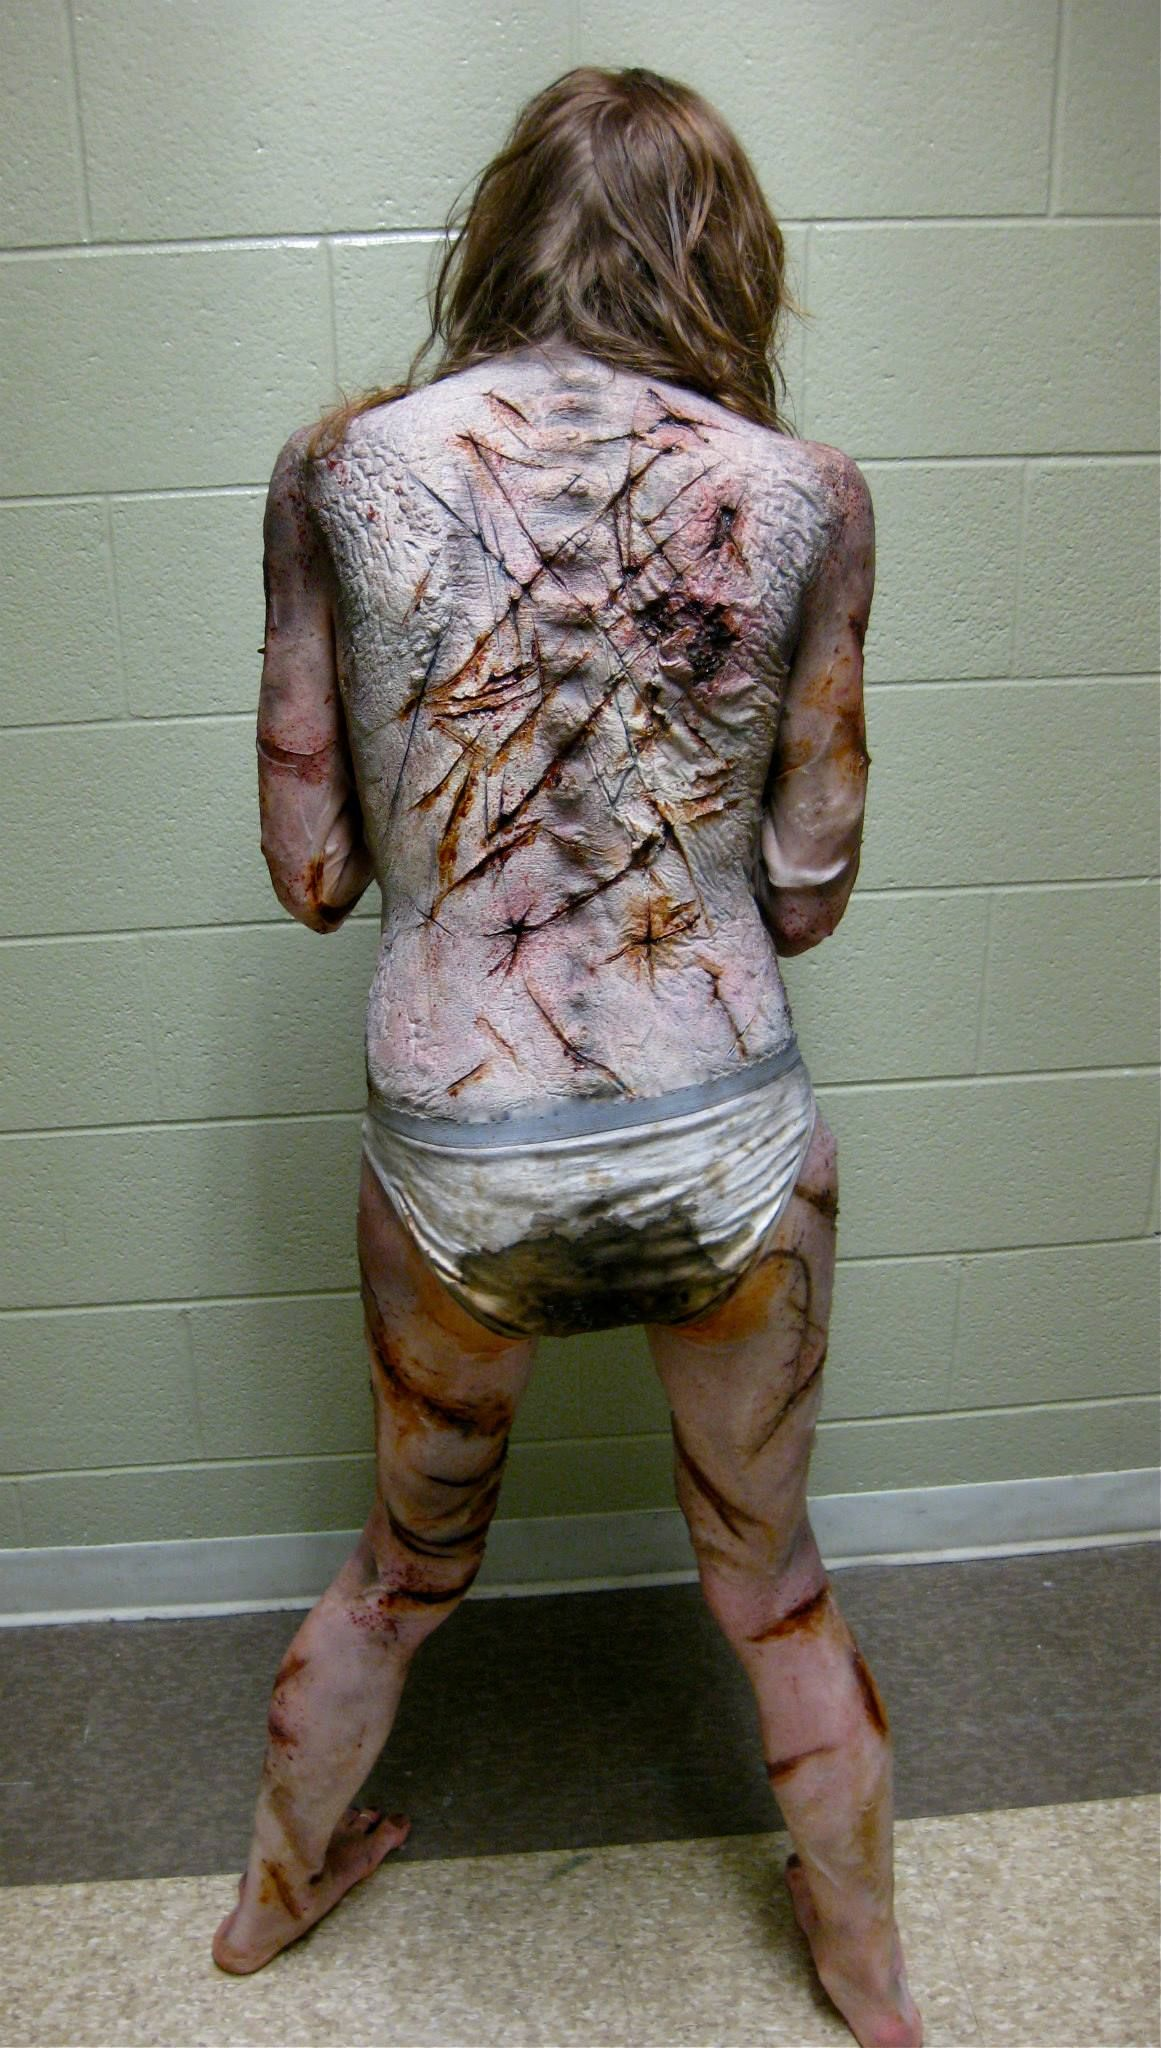 Special Makeup Effects designed and created by The Butcher